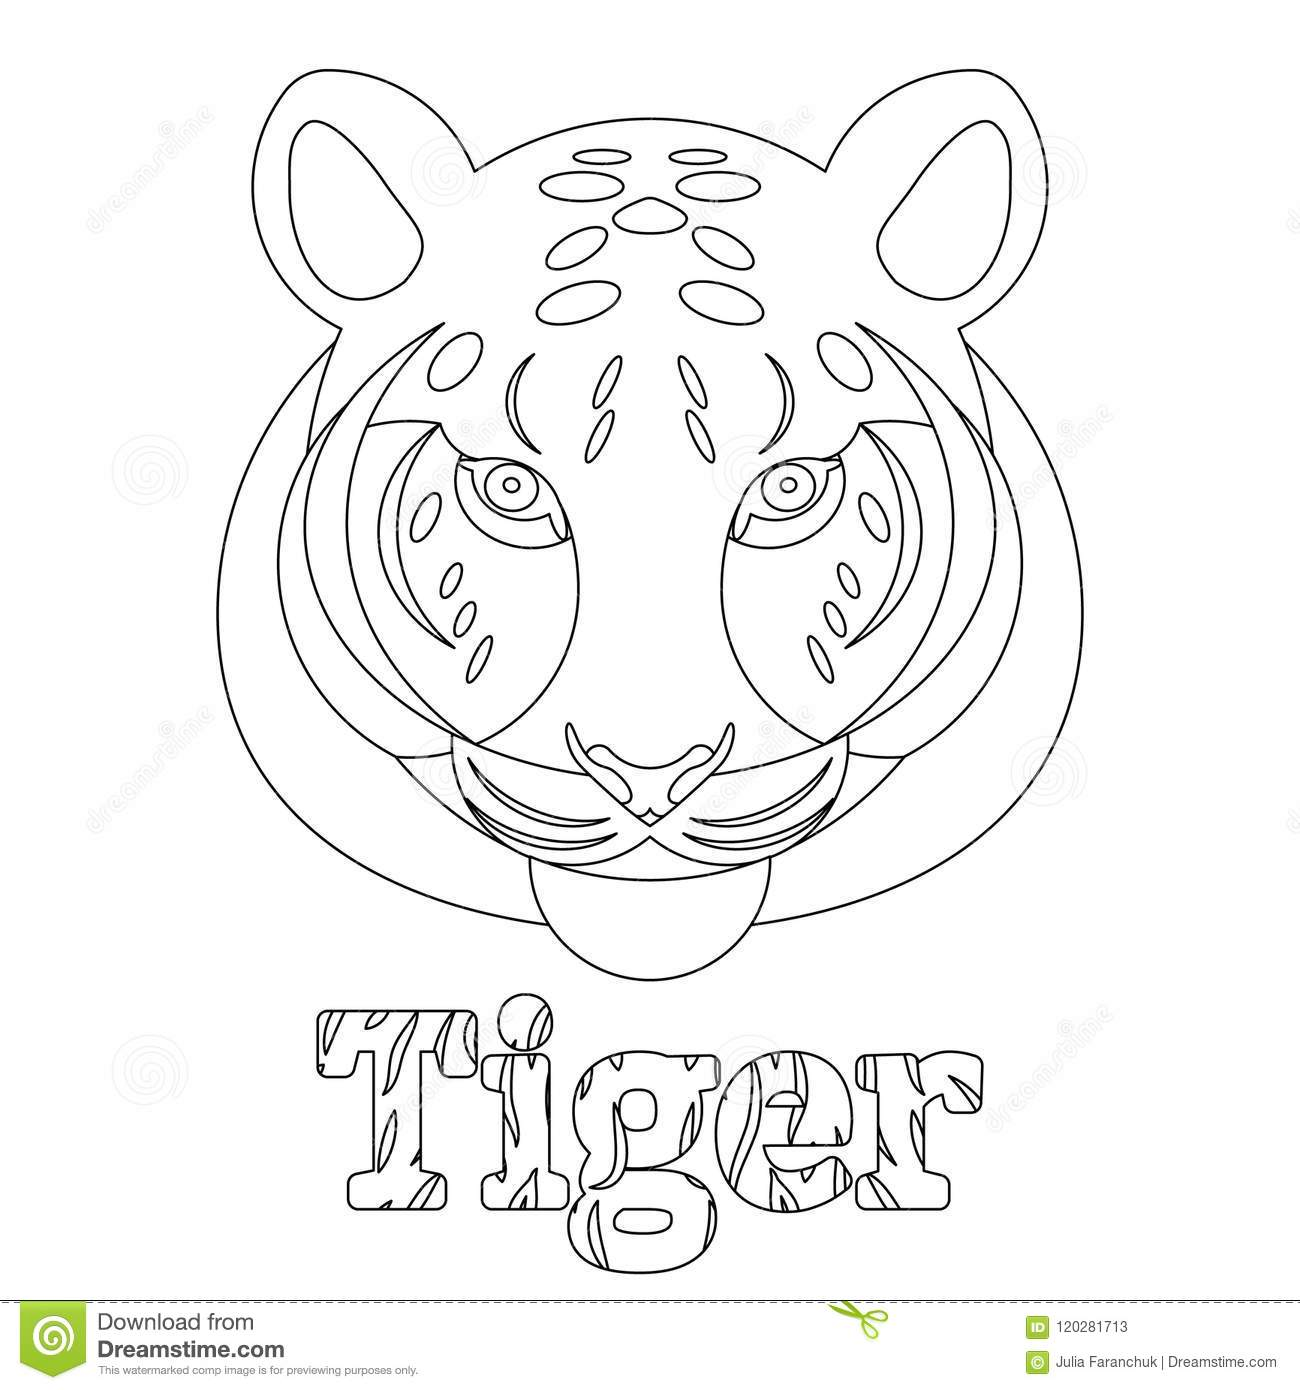 Tiger coloring page for kids wild mammal is an animal linear style